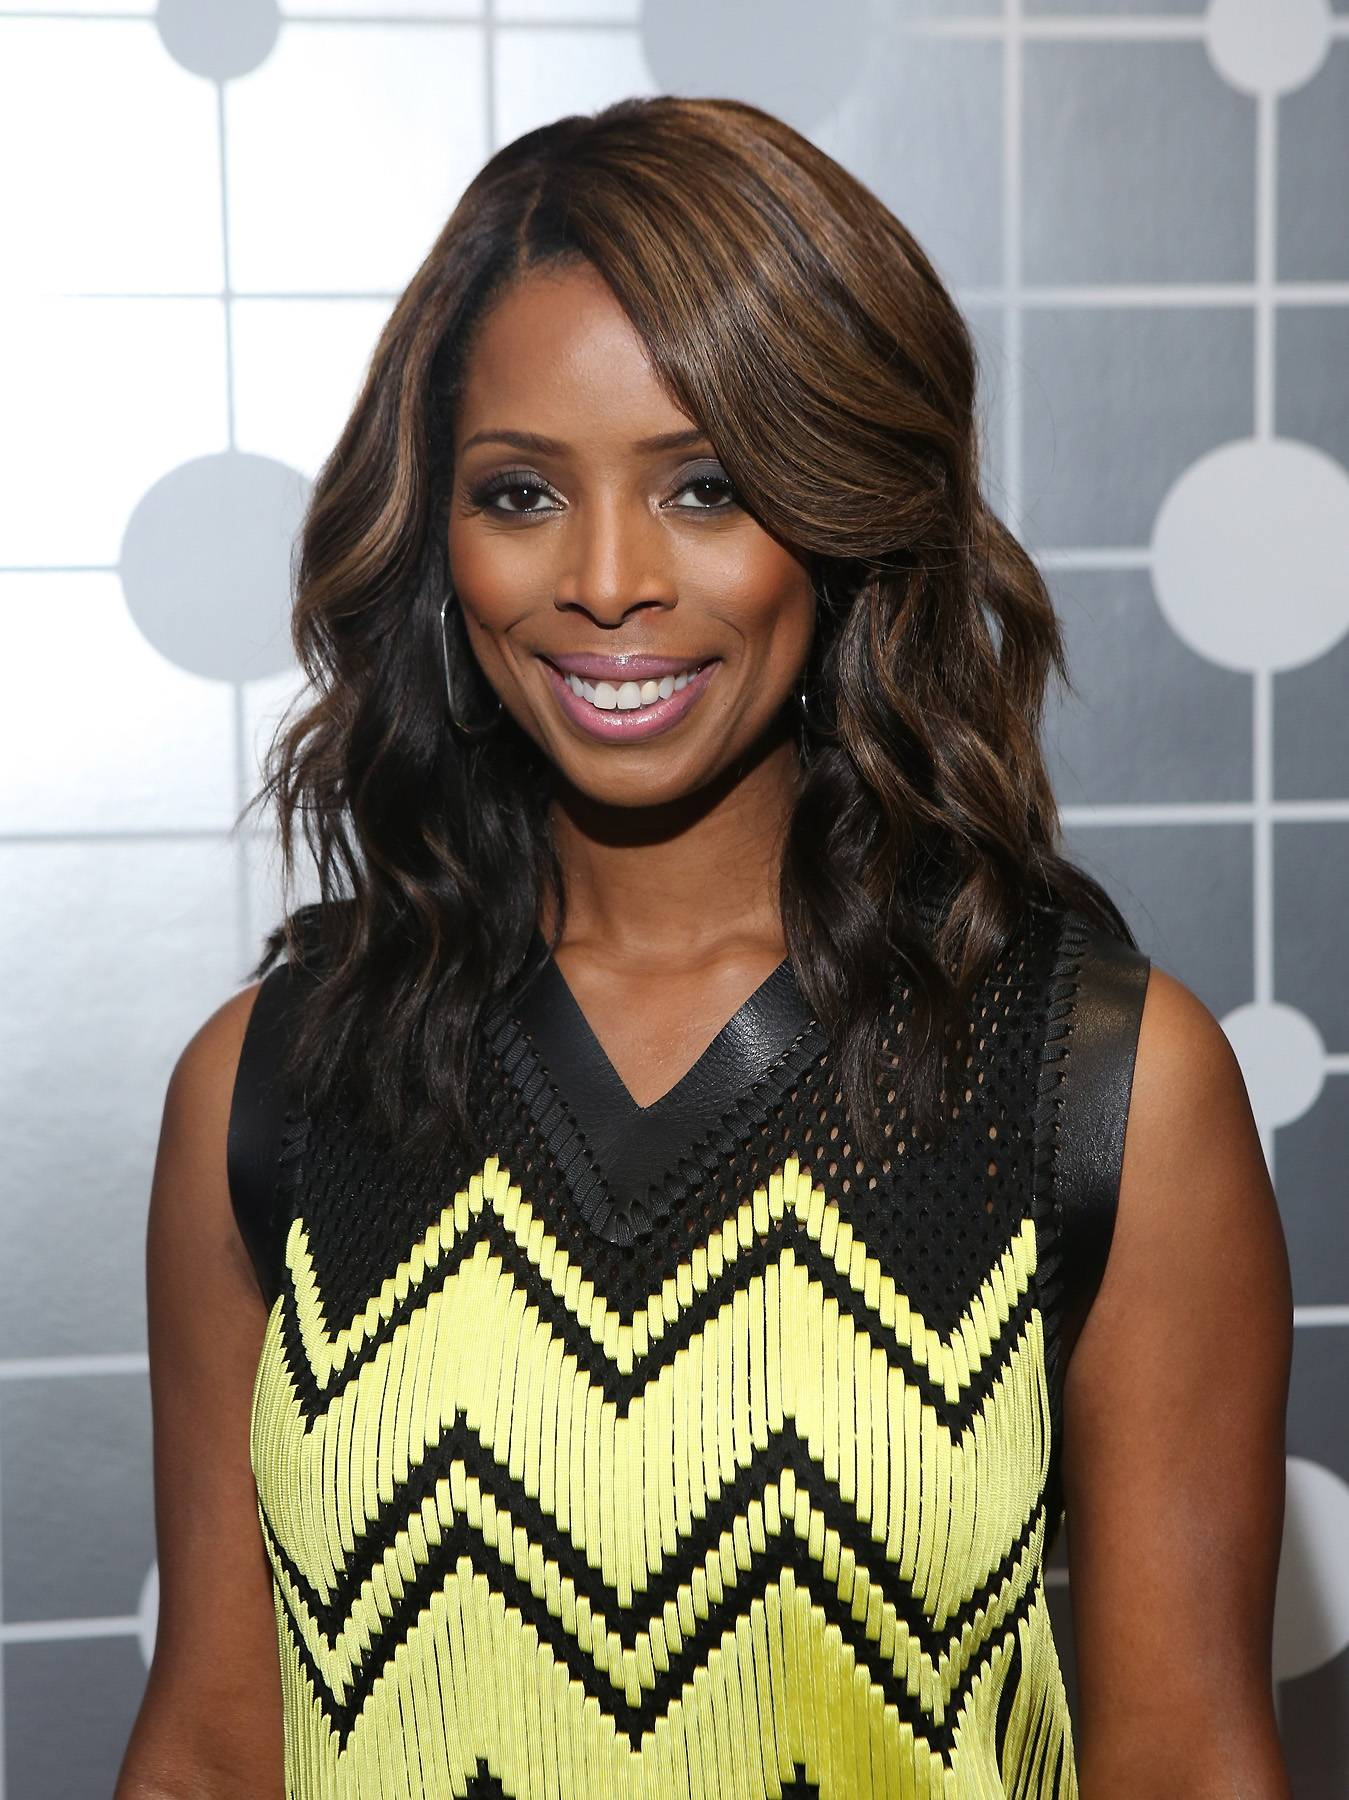 Beauty in Motion - (Photo: Bennett Raglin/BET/Getty Images for BET)